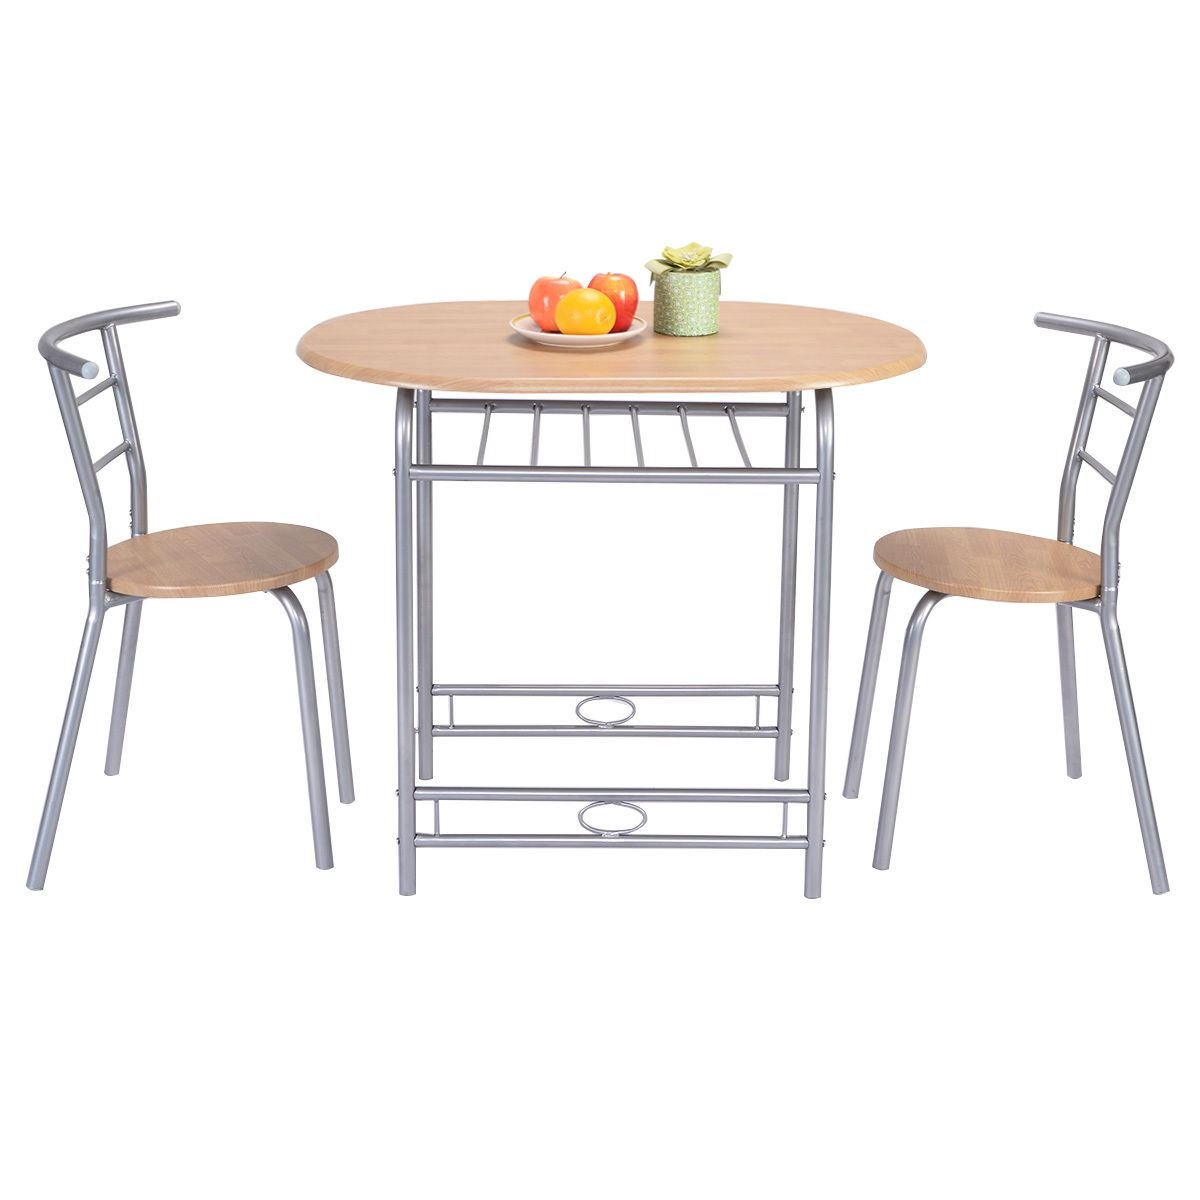 MasterPanel - 3 PCS Table Chairs Set Kitchen Furniture Pub Home Restaurant Dining Set #TP3248 by MasterPanel